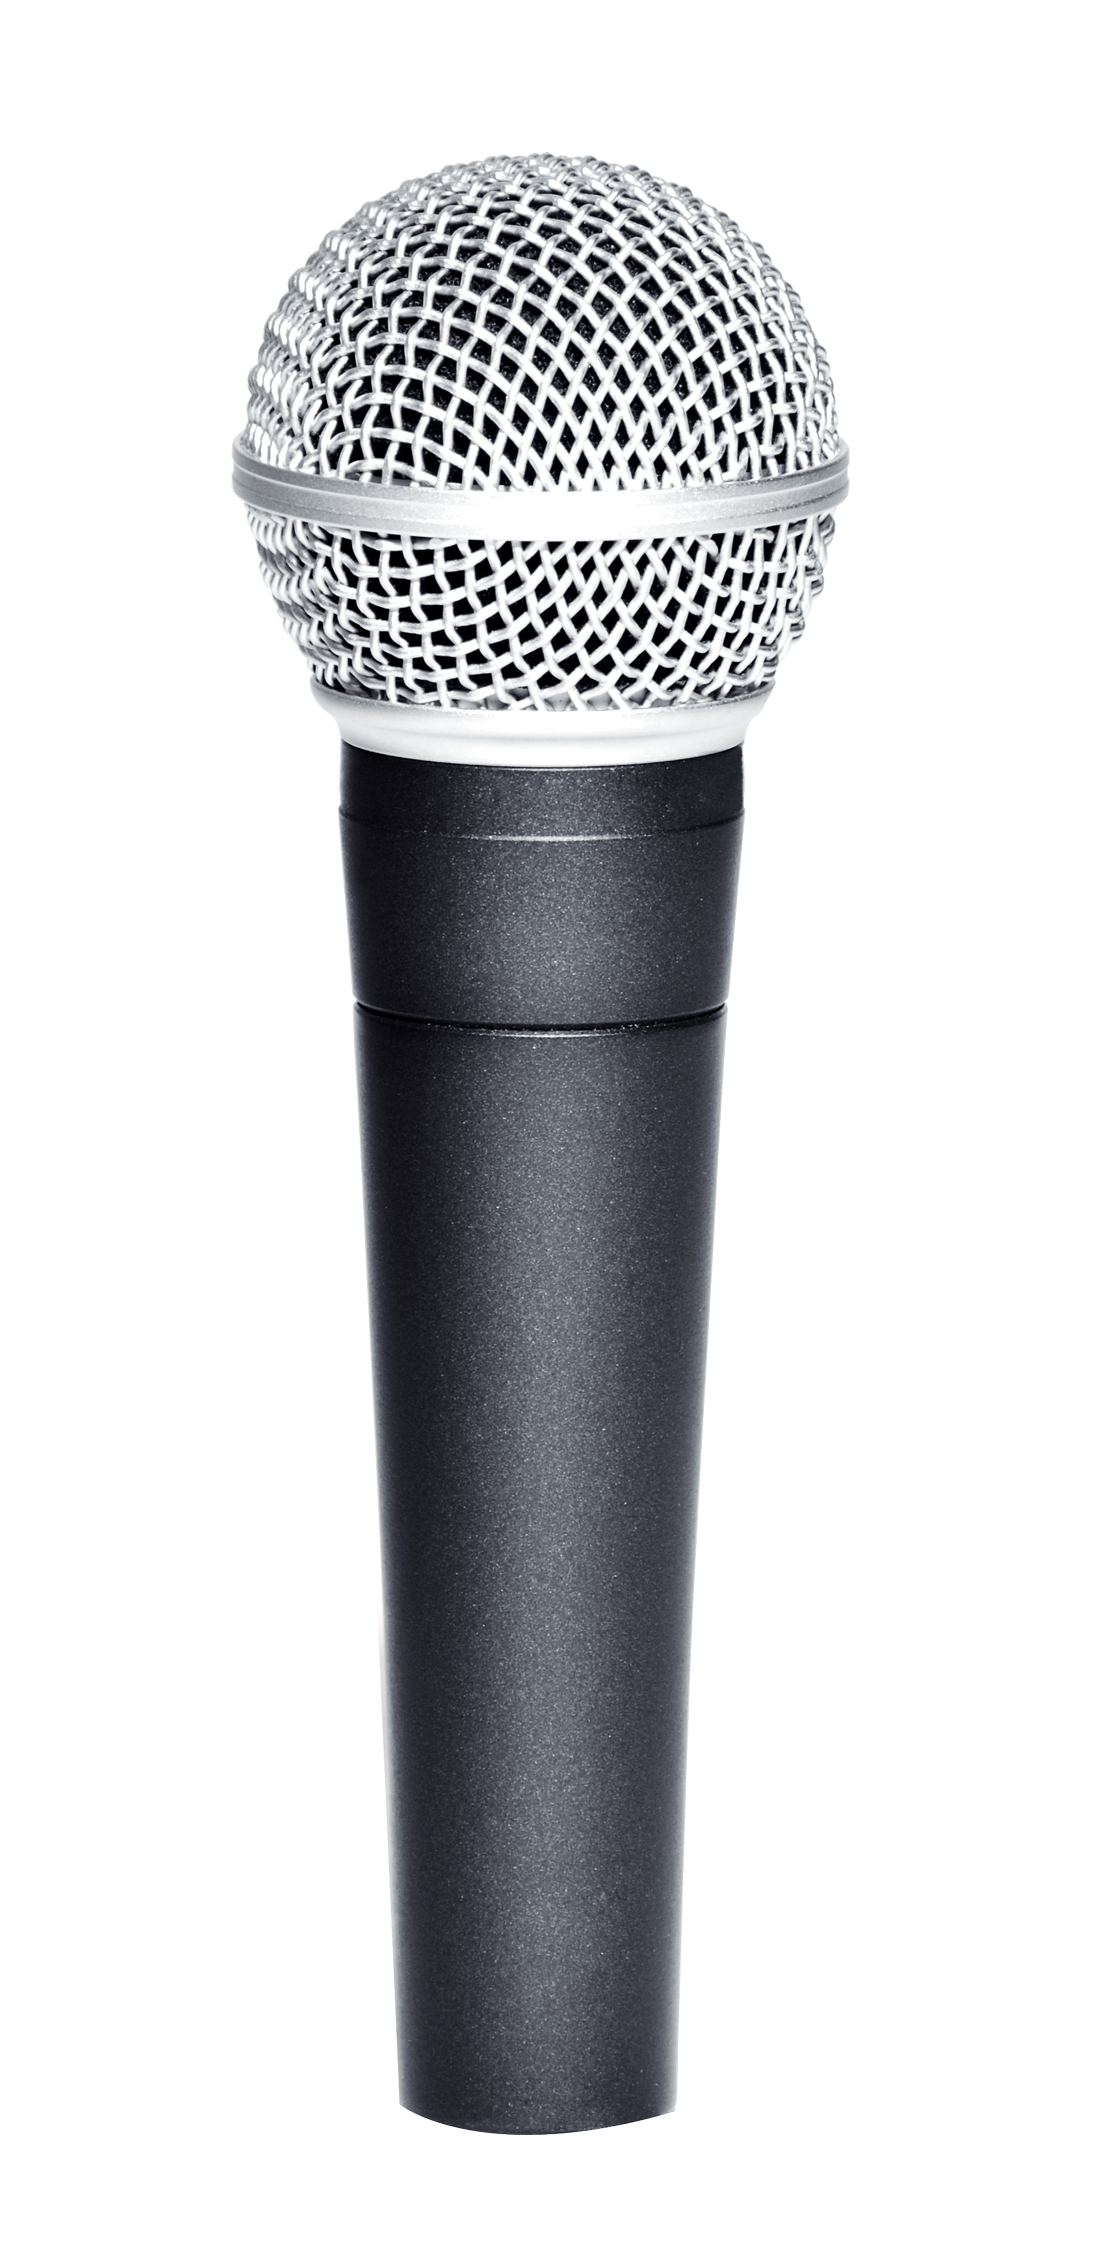 Microphone PNG Transparent Image - Microphone HD PNG